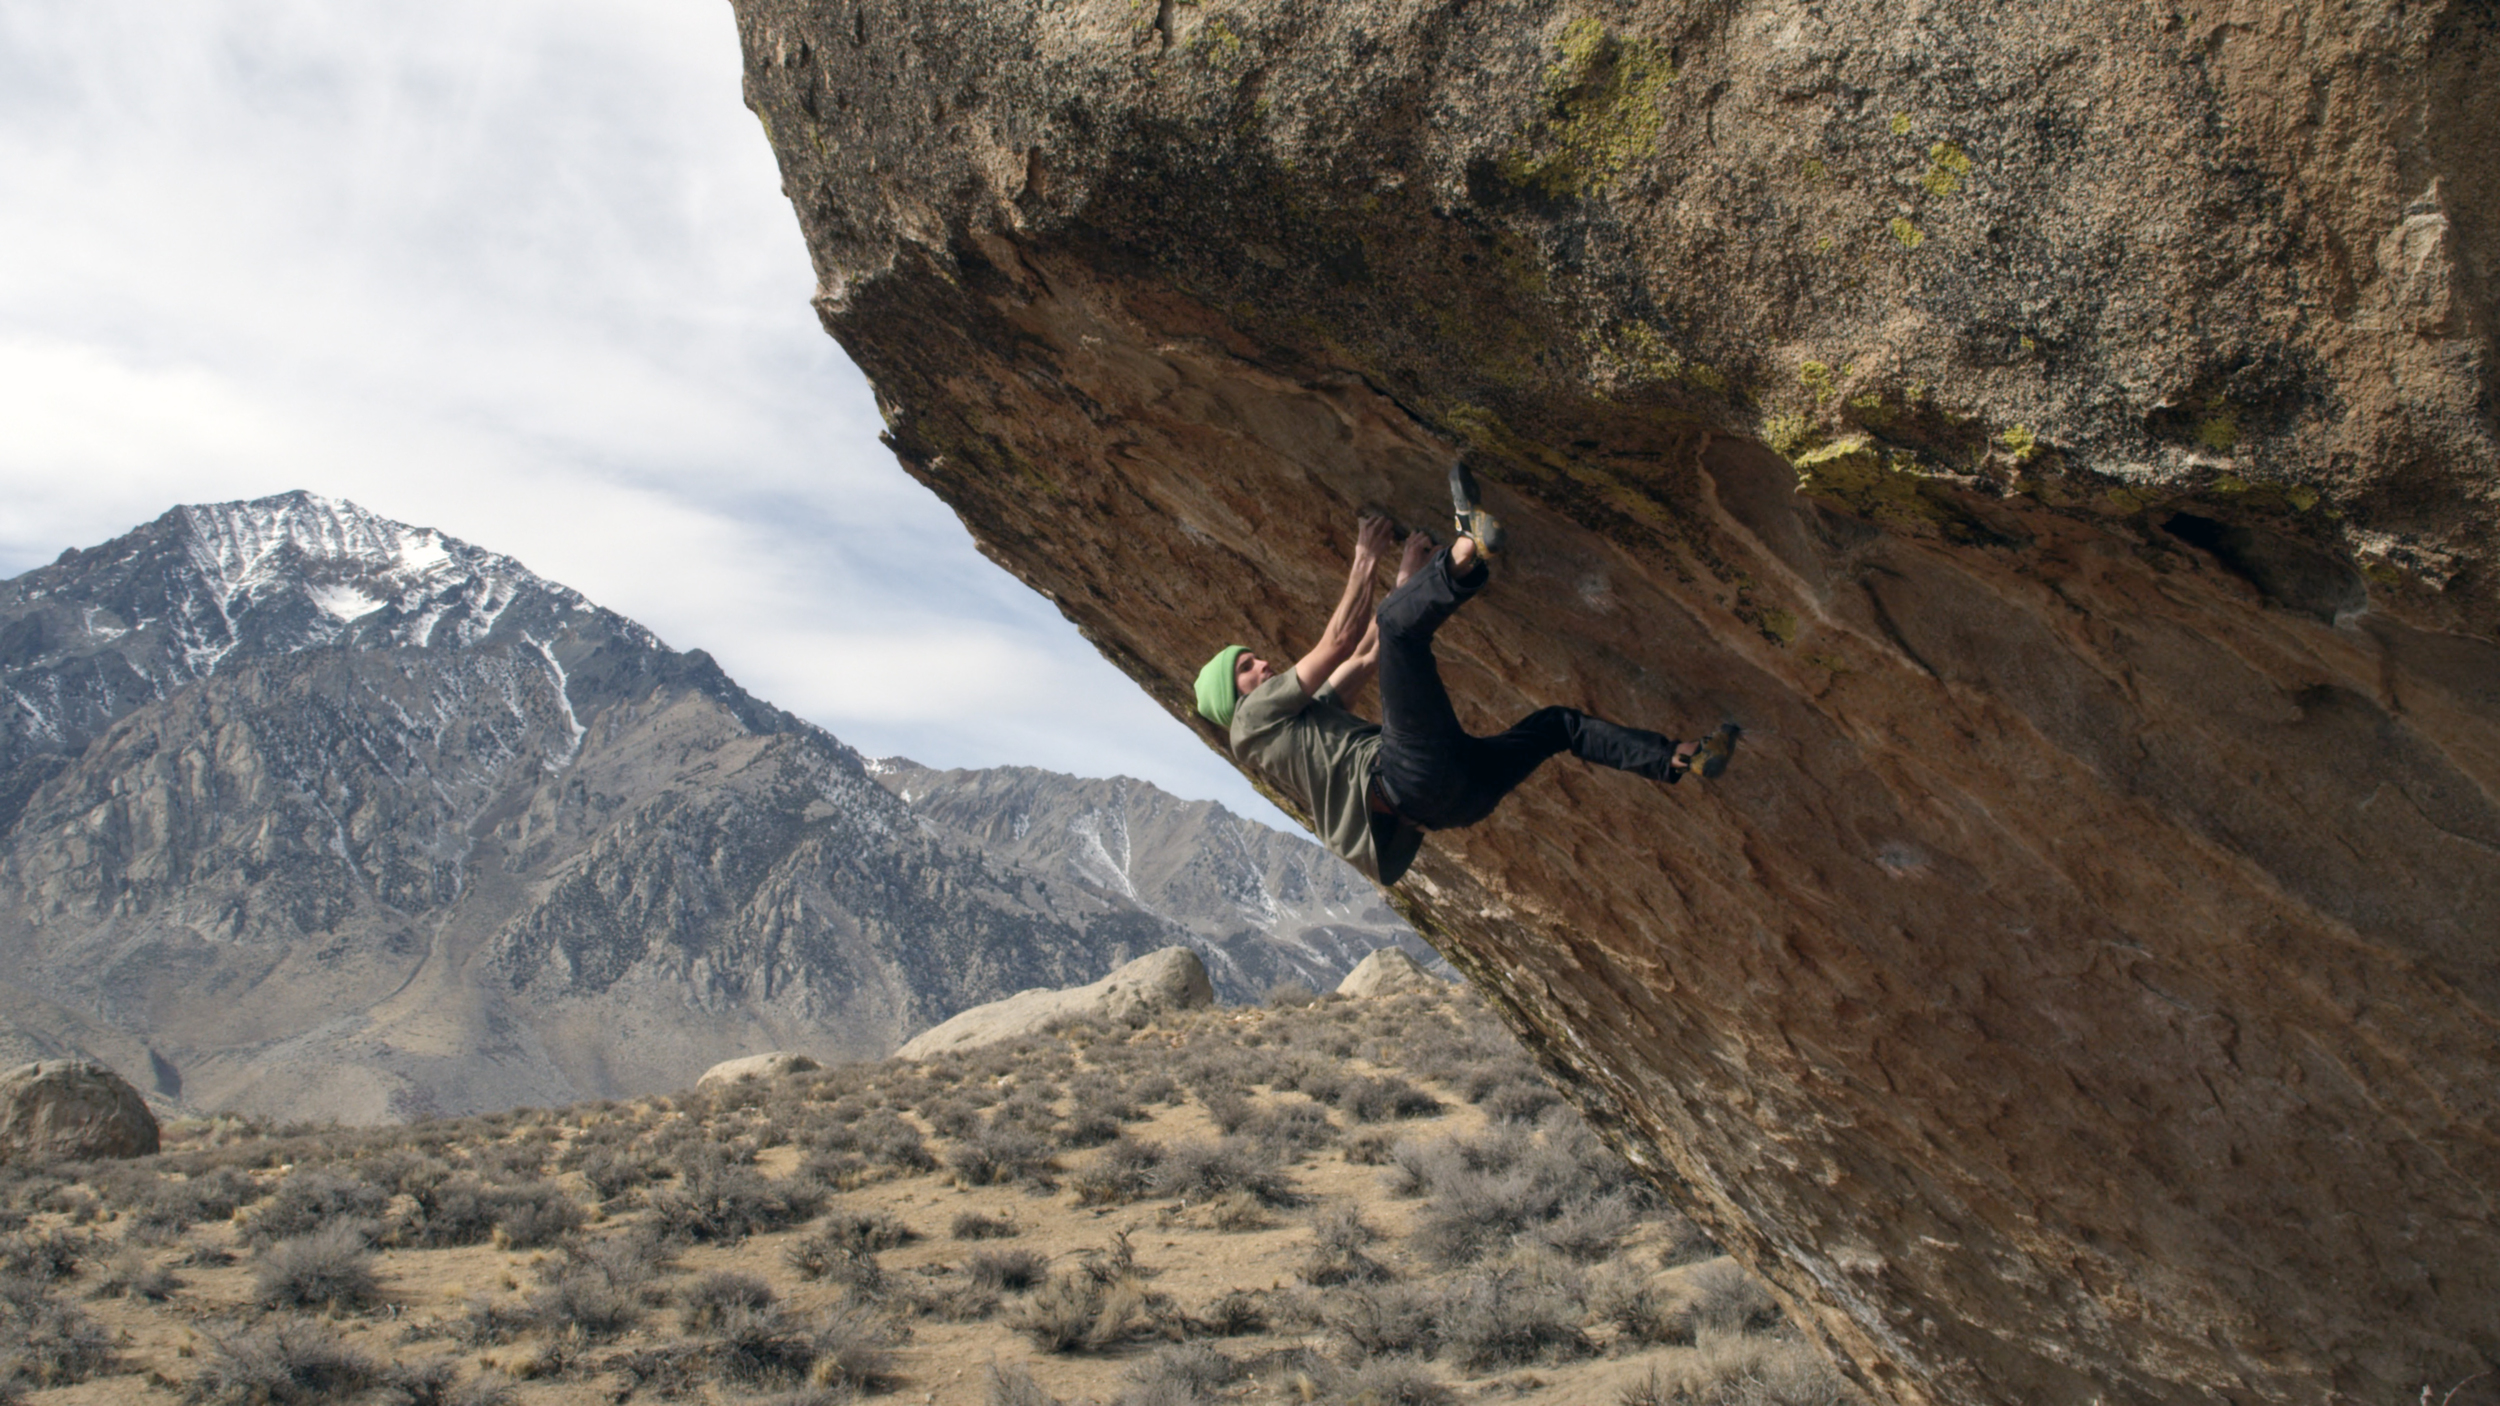 """DANIEL WOODS ON THE """"HIGH BALL"""" BOULDER PROBLEM THE PROCESS, BISHOP, CA.   MAX KRIMMER"""